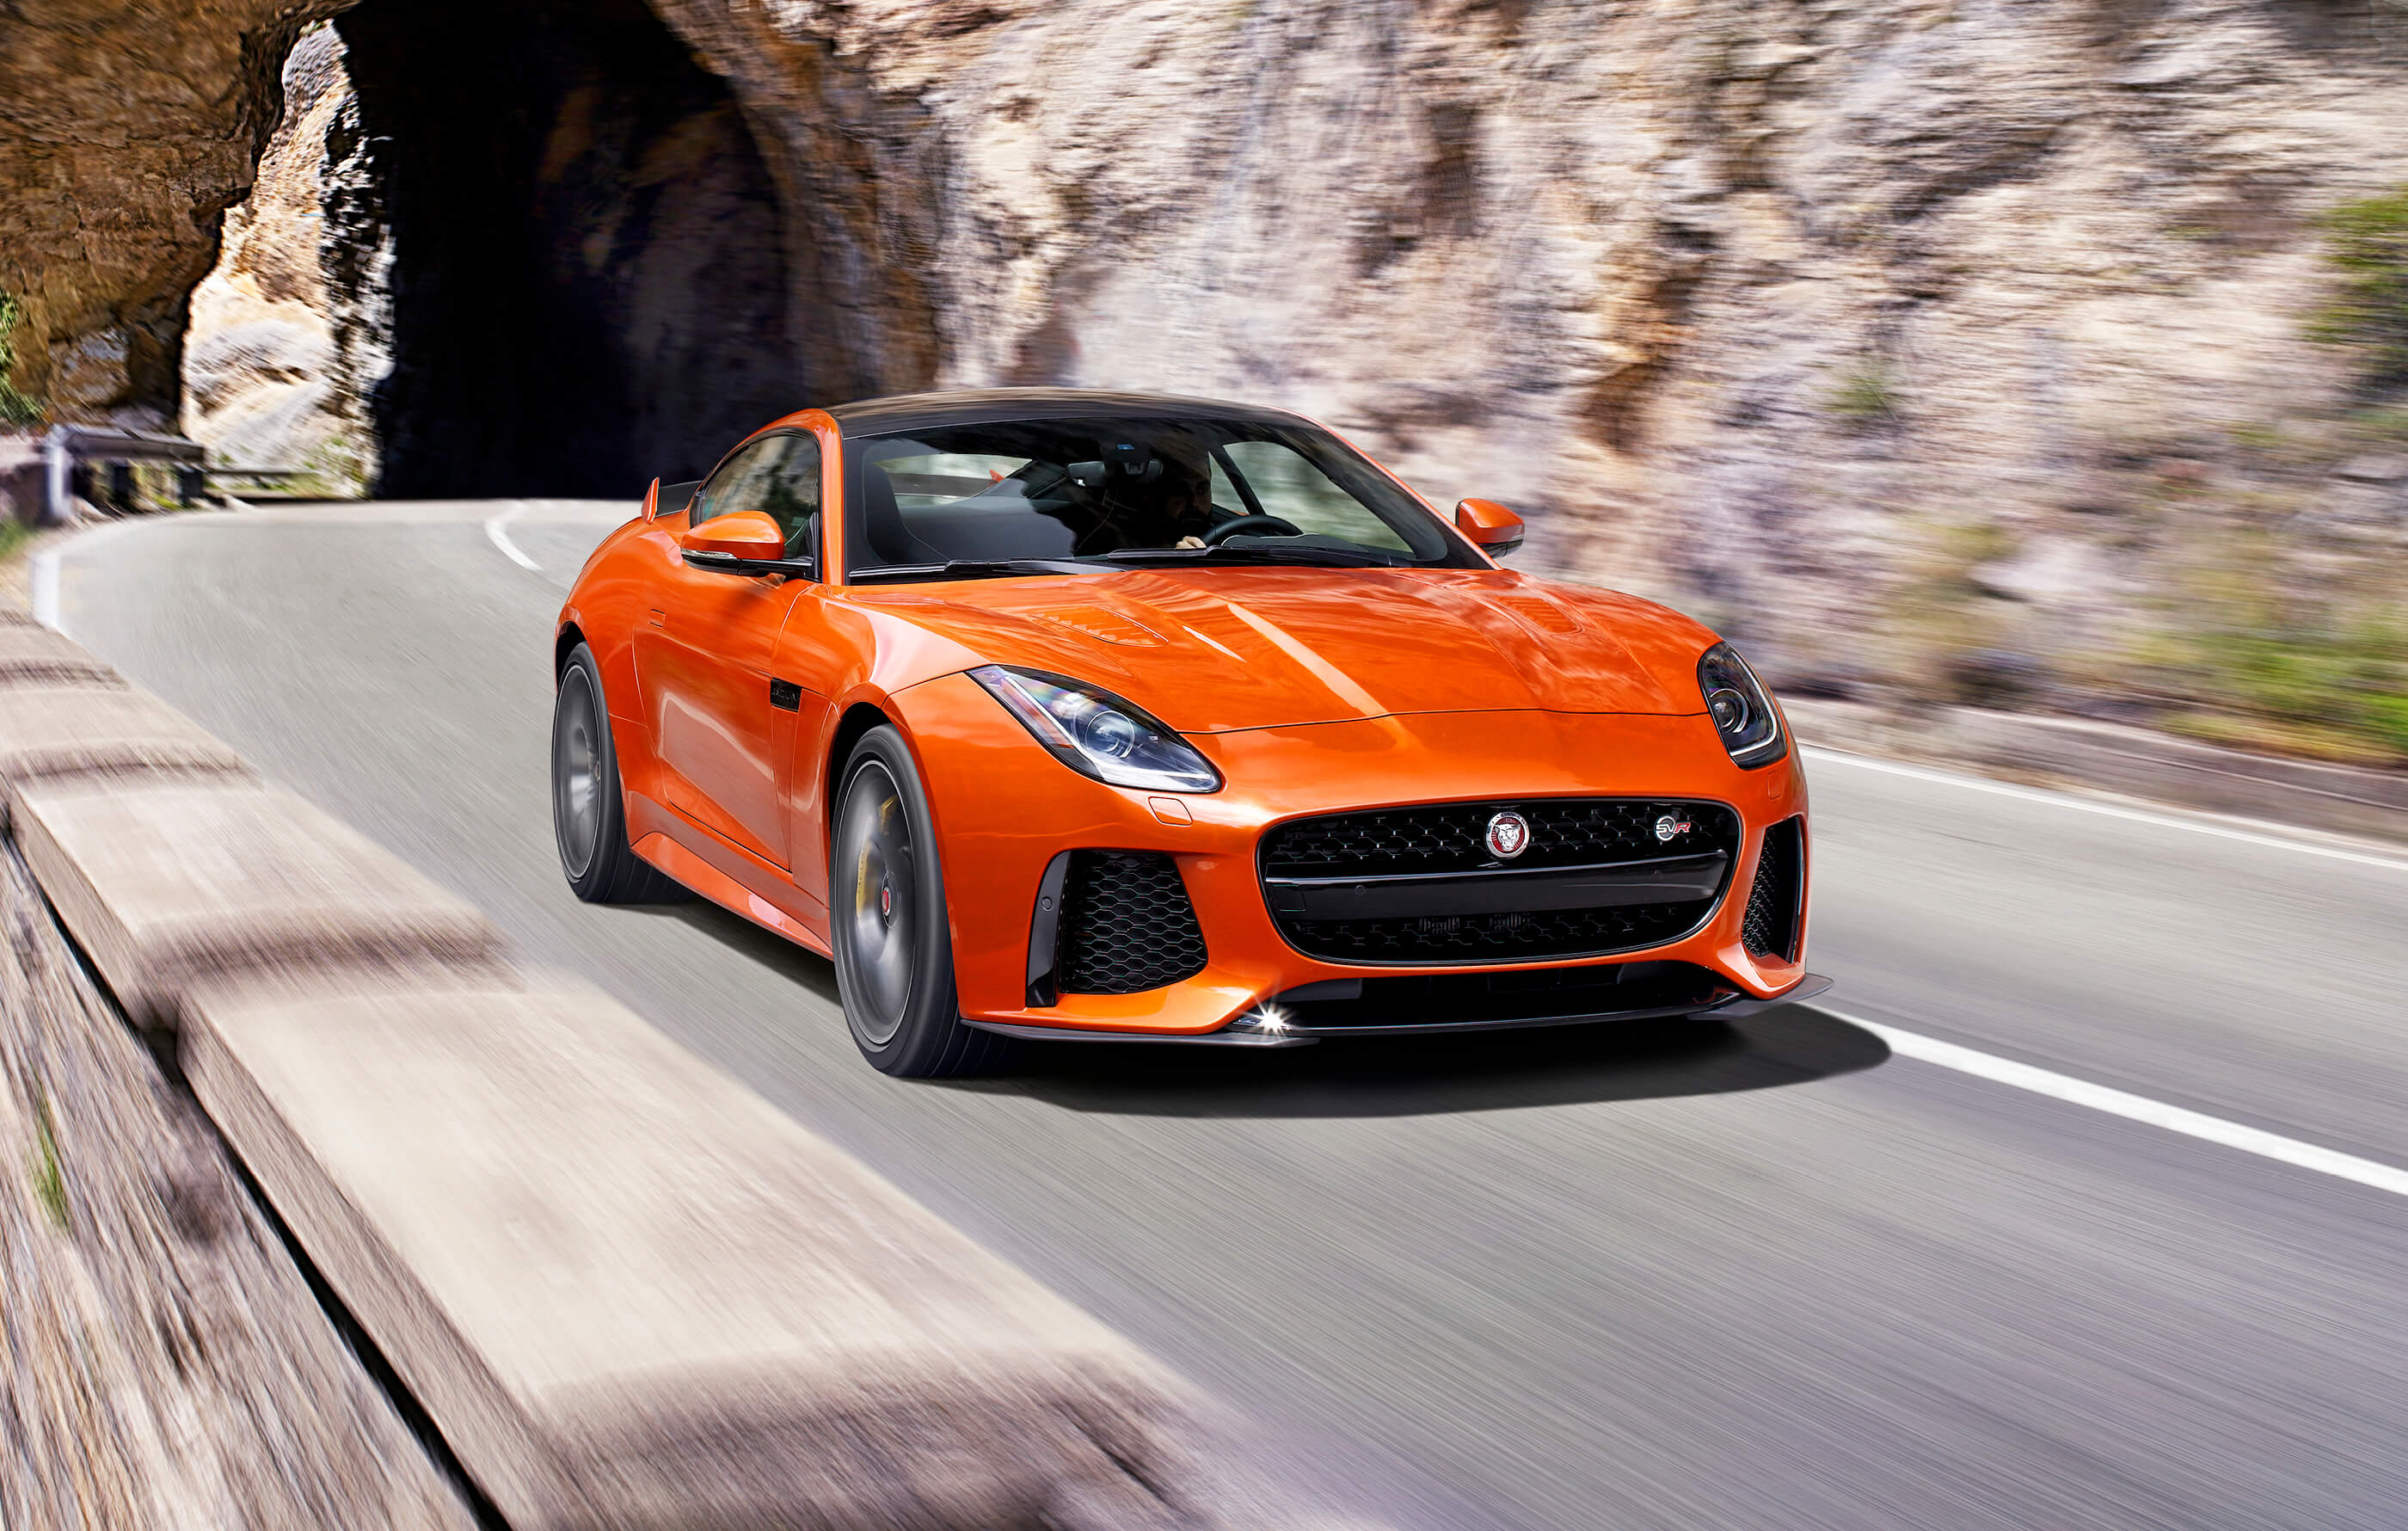 Full screen image of an orange Jaguar F-Type SVR on open roads